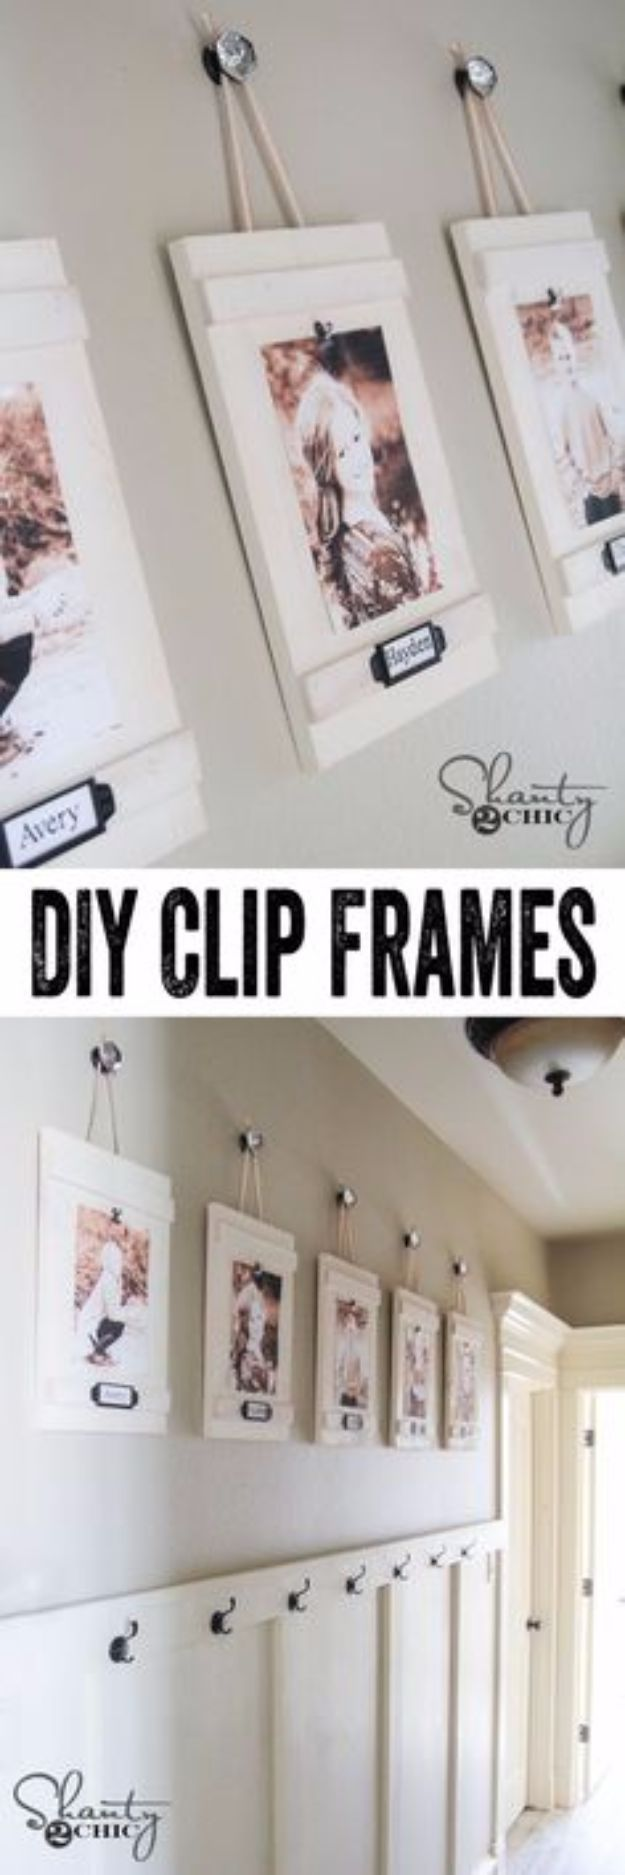 Tips and Tricks for Hanging Photos and Frames - DIY Hanging Frames with Labels - Step By Step Tutorials and Easy DIY Home Decor Projects for Decorating Walls - Cool Wall Art Ideas for Bedroom, Living Room, Gallery Walls - Creative and Cheap Ideas for Displaying Photos and Prints - DIY Projects and Crafts by DIY JOY http://diyjoy.com/tips-hanging-photos-frames